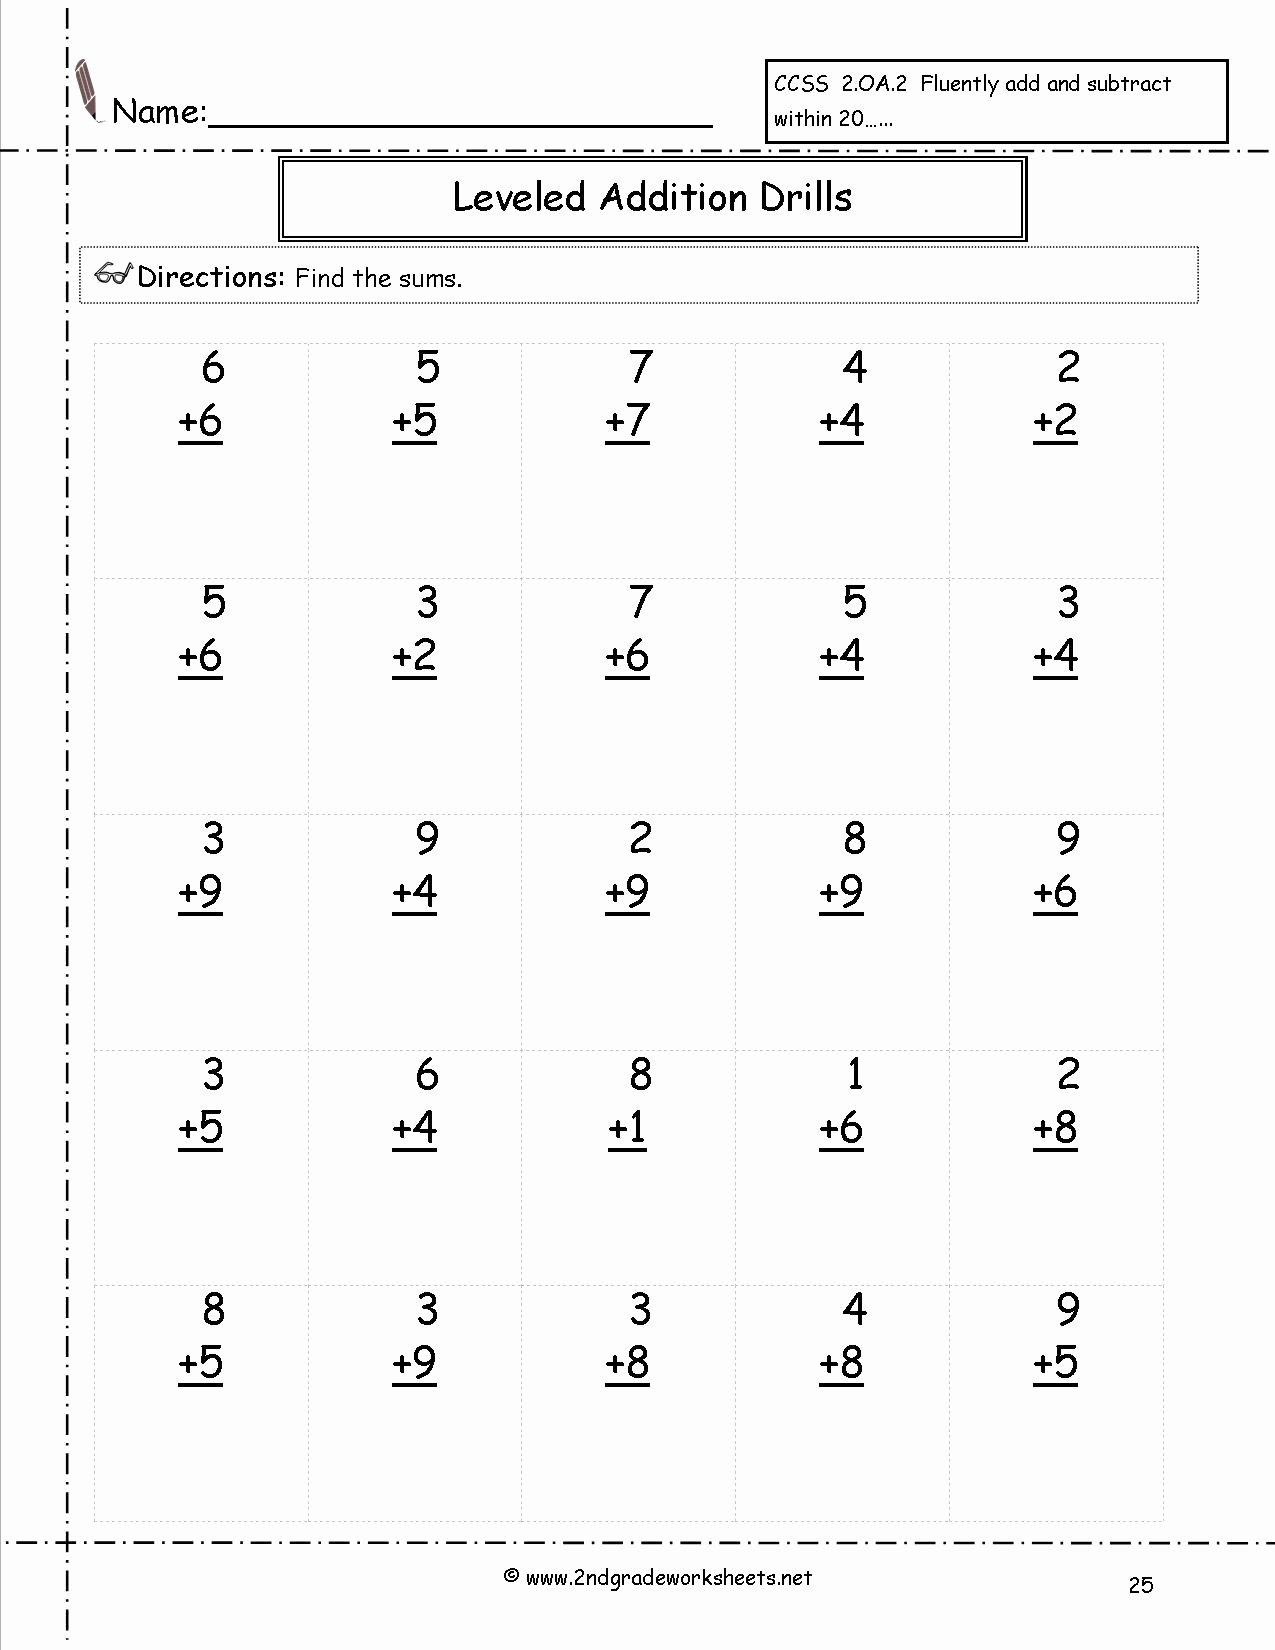 hight resolution of Maths Multiplication Worksheets for Grade 2 Awesome Math Worksheet  Multiplication Worksheets for Grade 2 Free – Printable Math Worksheets